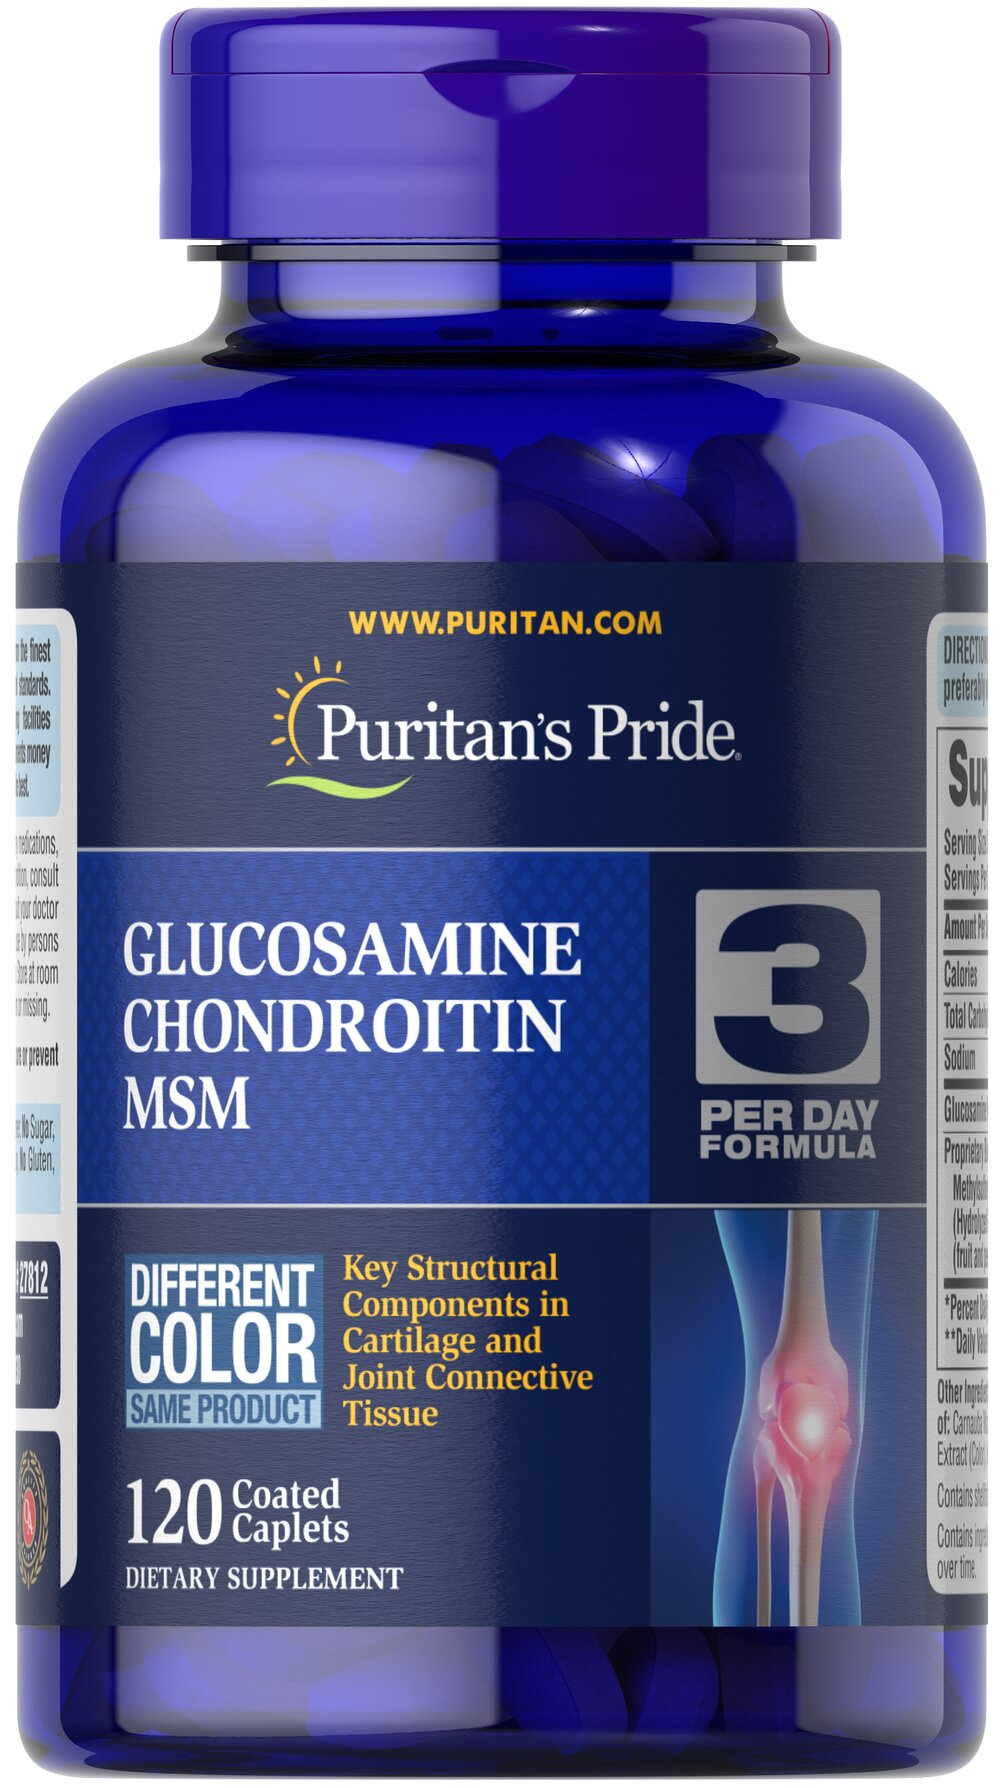 Double Strength Glucosamine, Chondroitin & MSM Joint Soother® <p>Combines the top three structural components found in popular joint support products — Glucosamine, Chondroitin and MSM — with amino and herbal support from Collagen and Boswellia Serrata**</p><p>This high-quality formula delivers 1,500 mg of Glucosamine Sulfate to help support cartilage, lubricate the joints, and helps with occasional joint stress due to exercise or physical activity**</p> 120 Capl